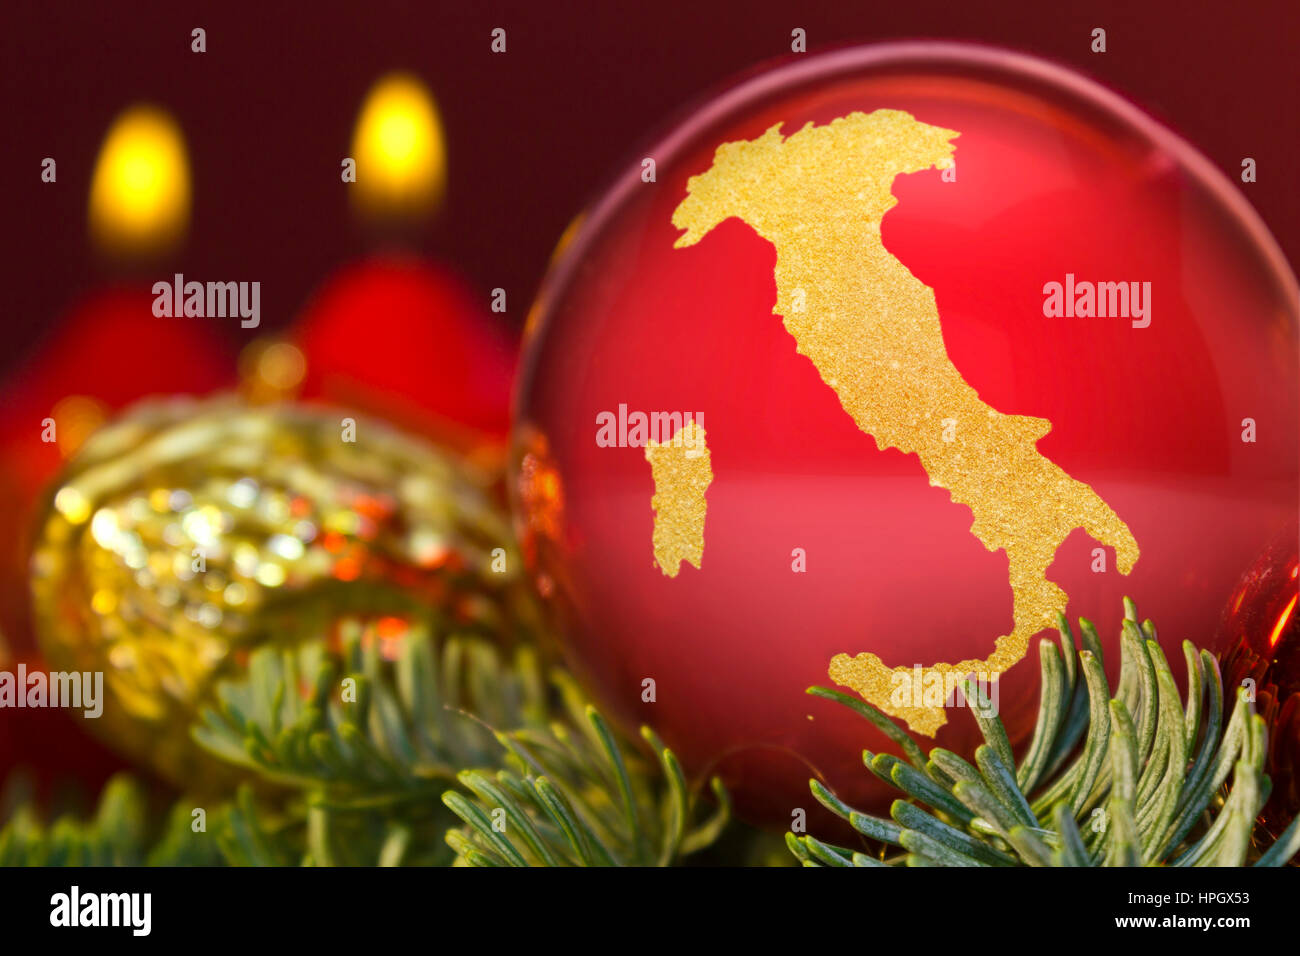 https://c7.alamy.com/comp/HPGX53/a-glossy-red-bauble-with-the-golden-shape-of-italyseries-HPGX53.jpg